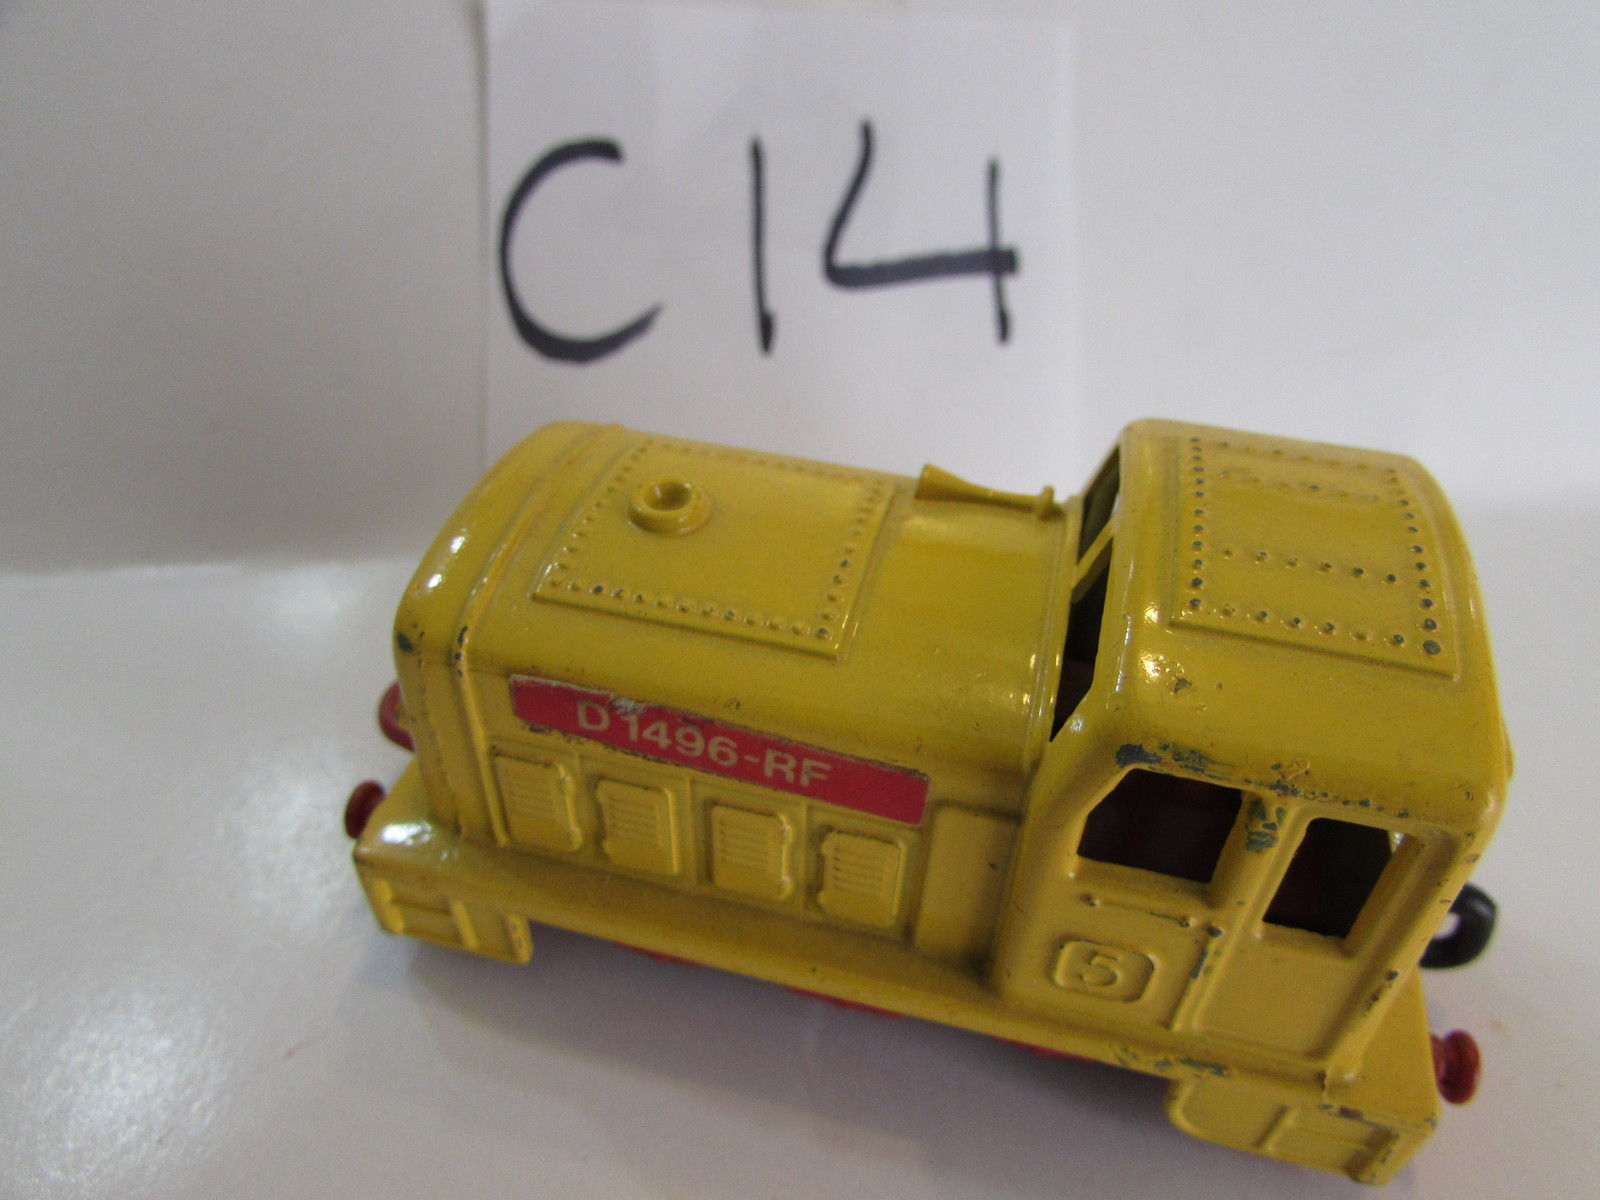 MATCHBOX LESNEY 1978 SUPERFAST - SHUNTER D 1496 RF - MADE IN ENGLAND - LOOSE - Click Image to Close